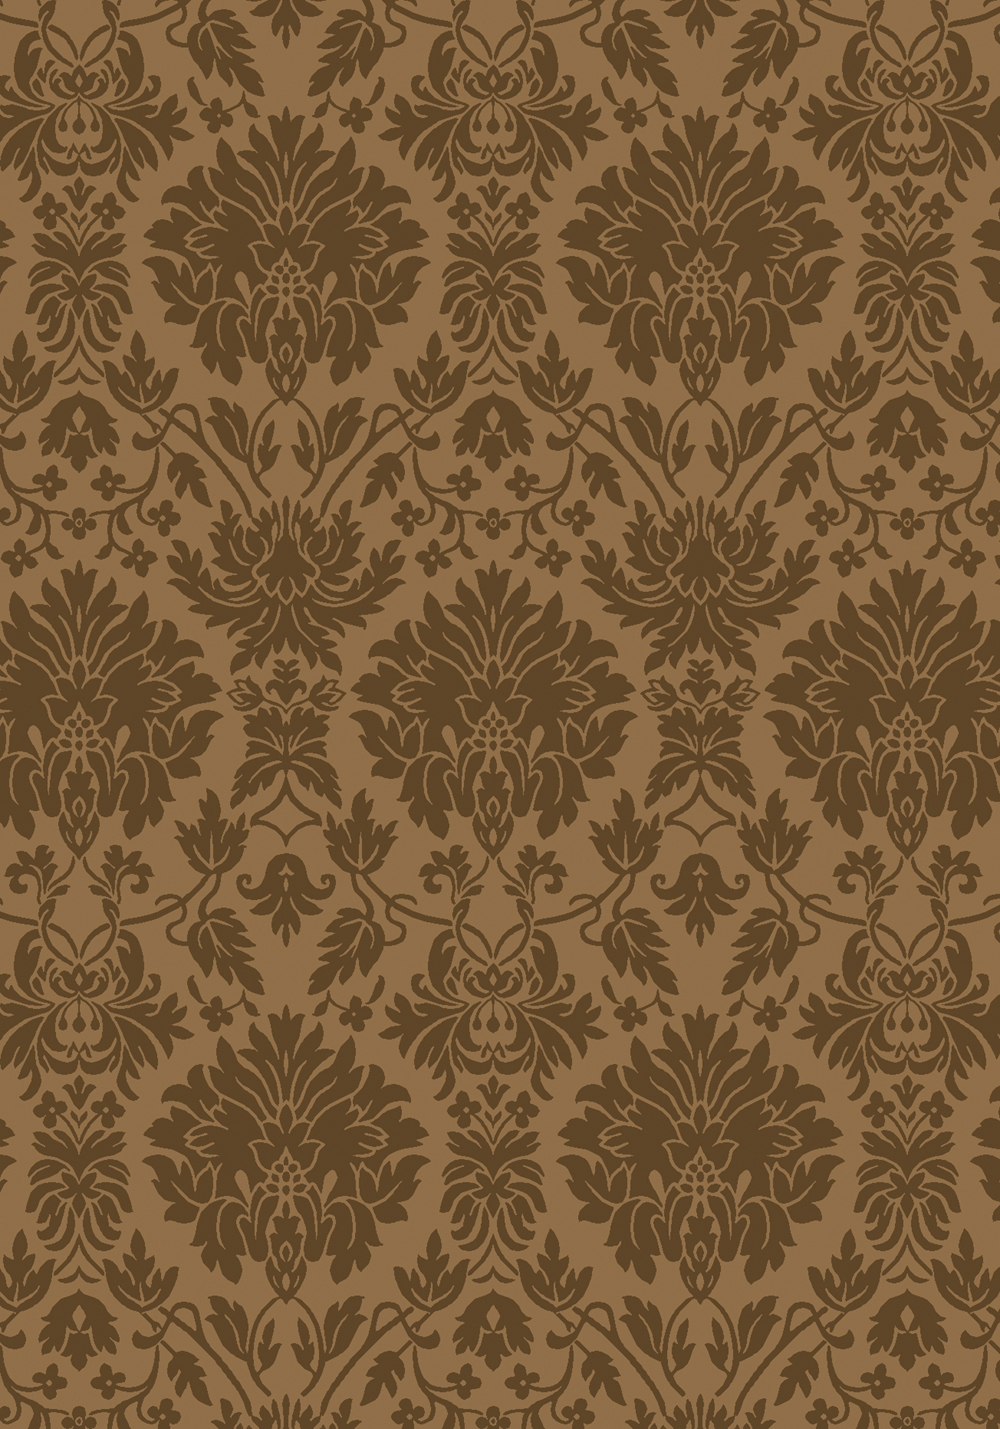 Milliken t30 collection best sellers by milliken rugs for Best selling rugs